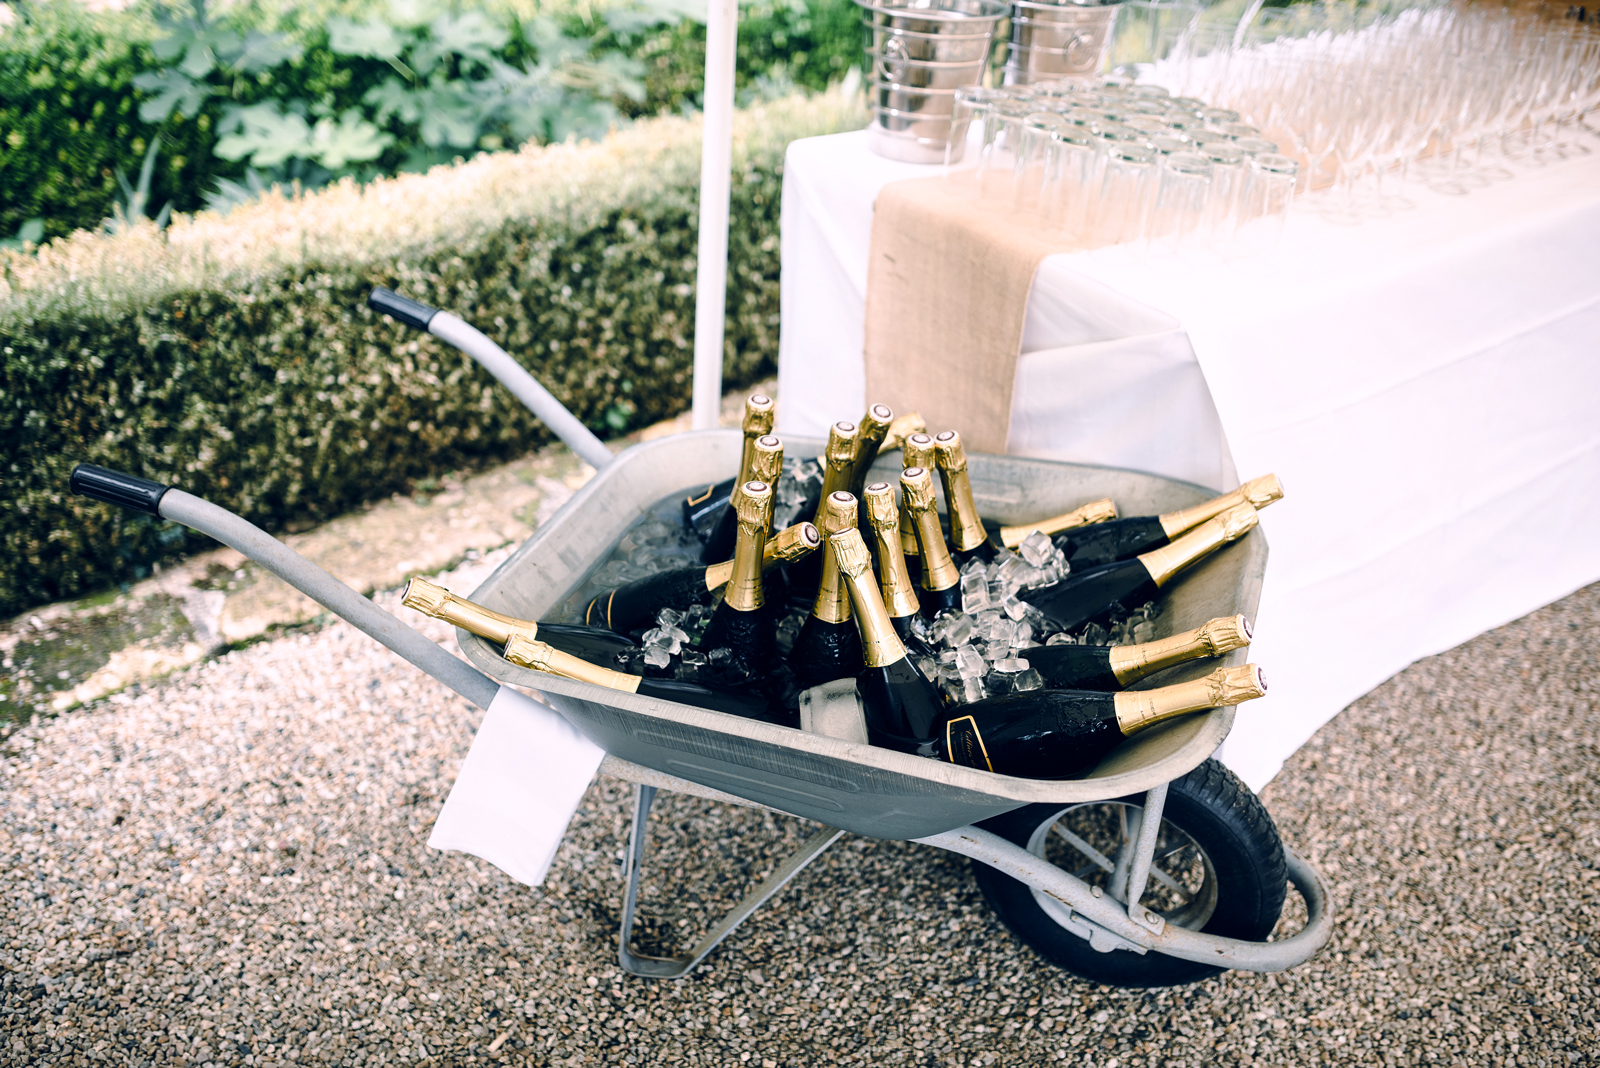 wheel barrow filled with ice and champagne bottles